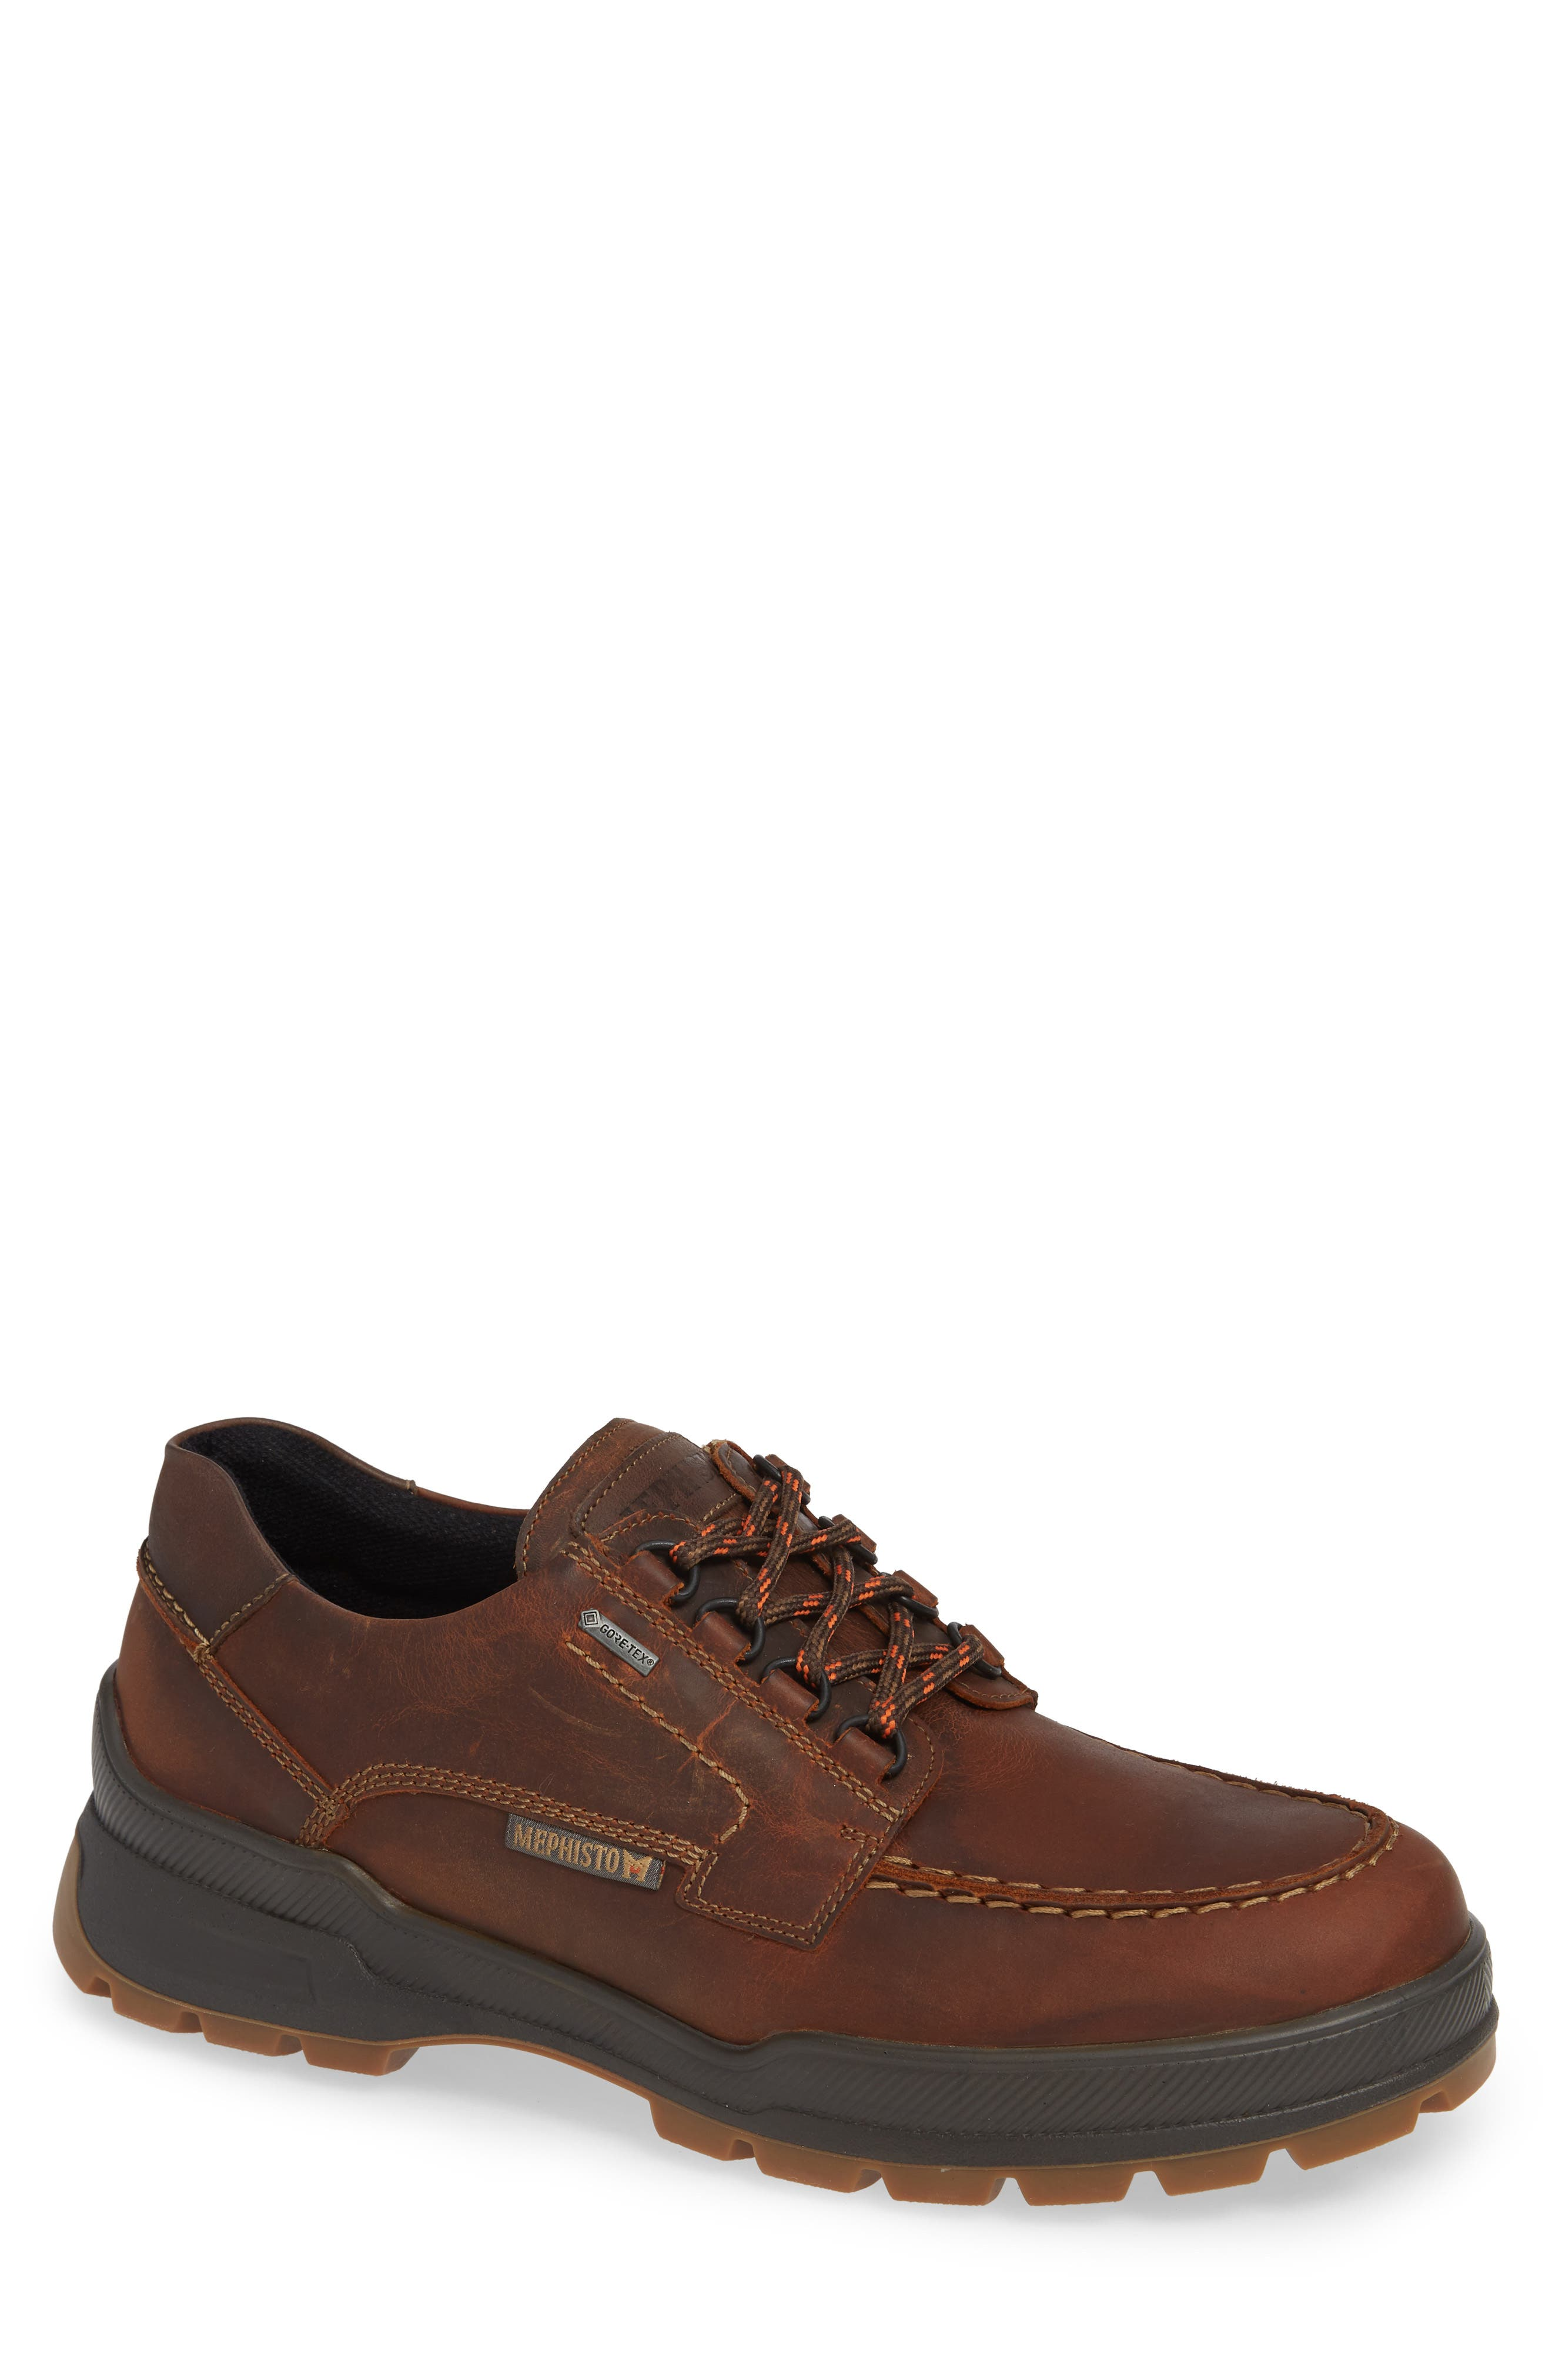 Isak GT Moc Toe Derby,                         Main,                         color, TOBACCO LEATHER